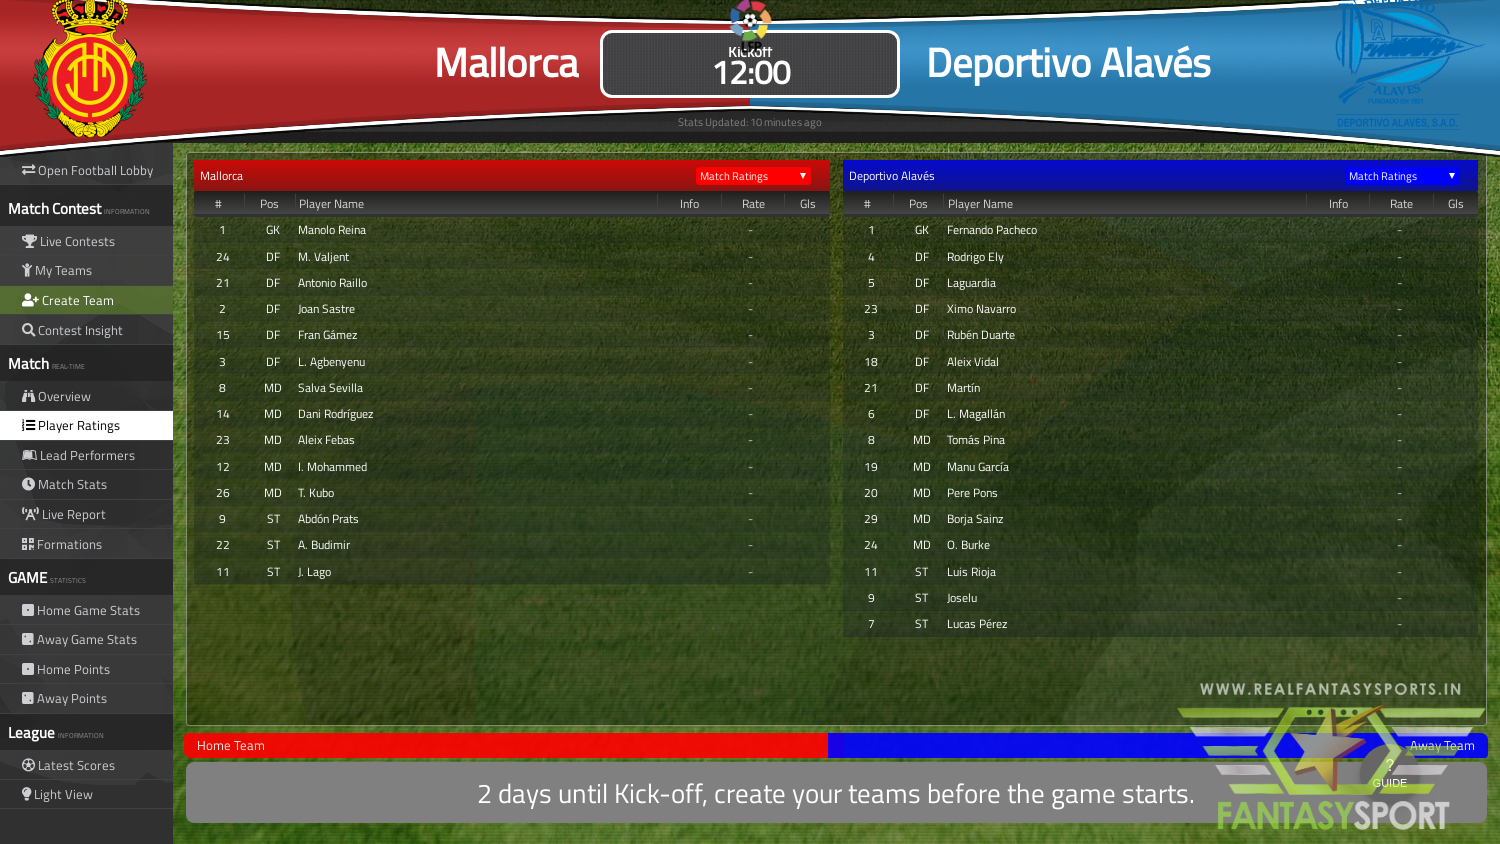 Fantasy Football Mallorca Vs Deportivo Alav S Saturday 15th February 2020